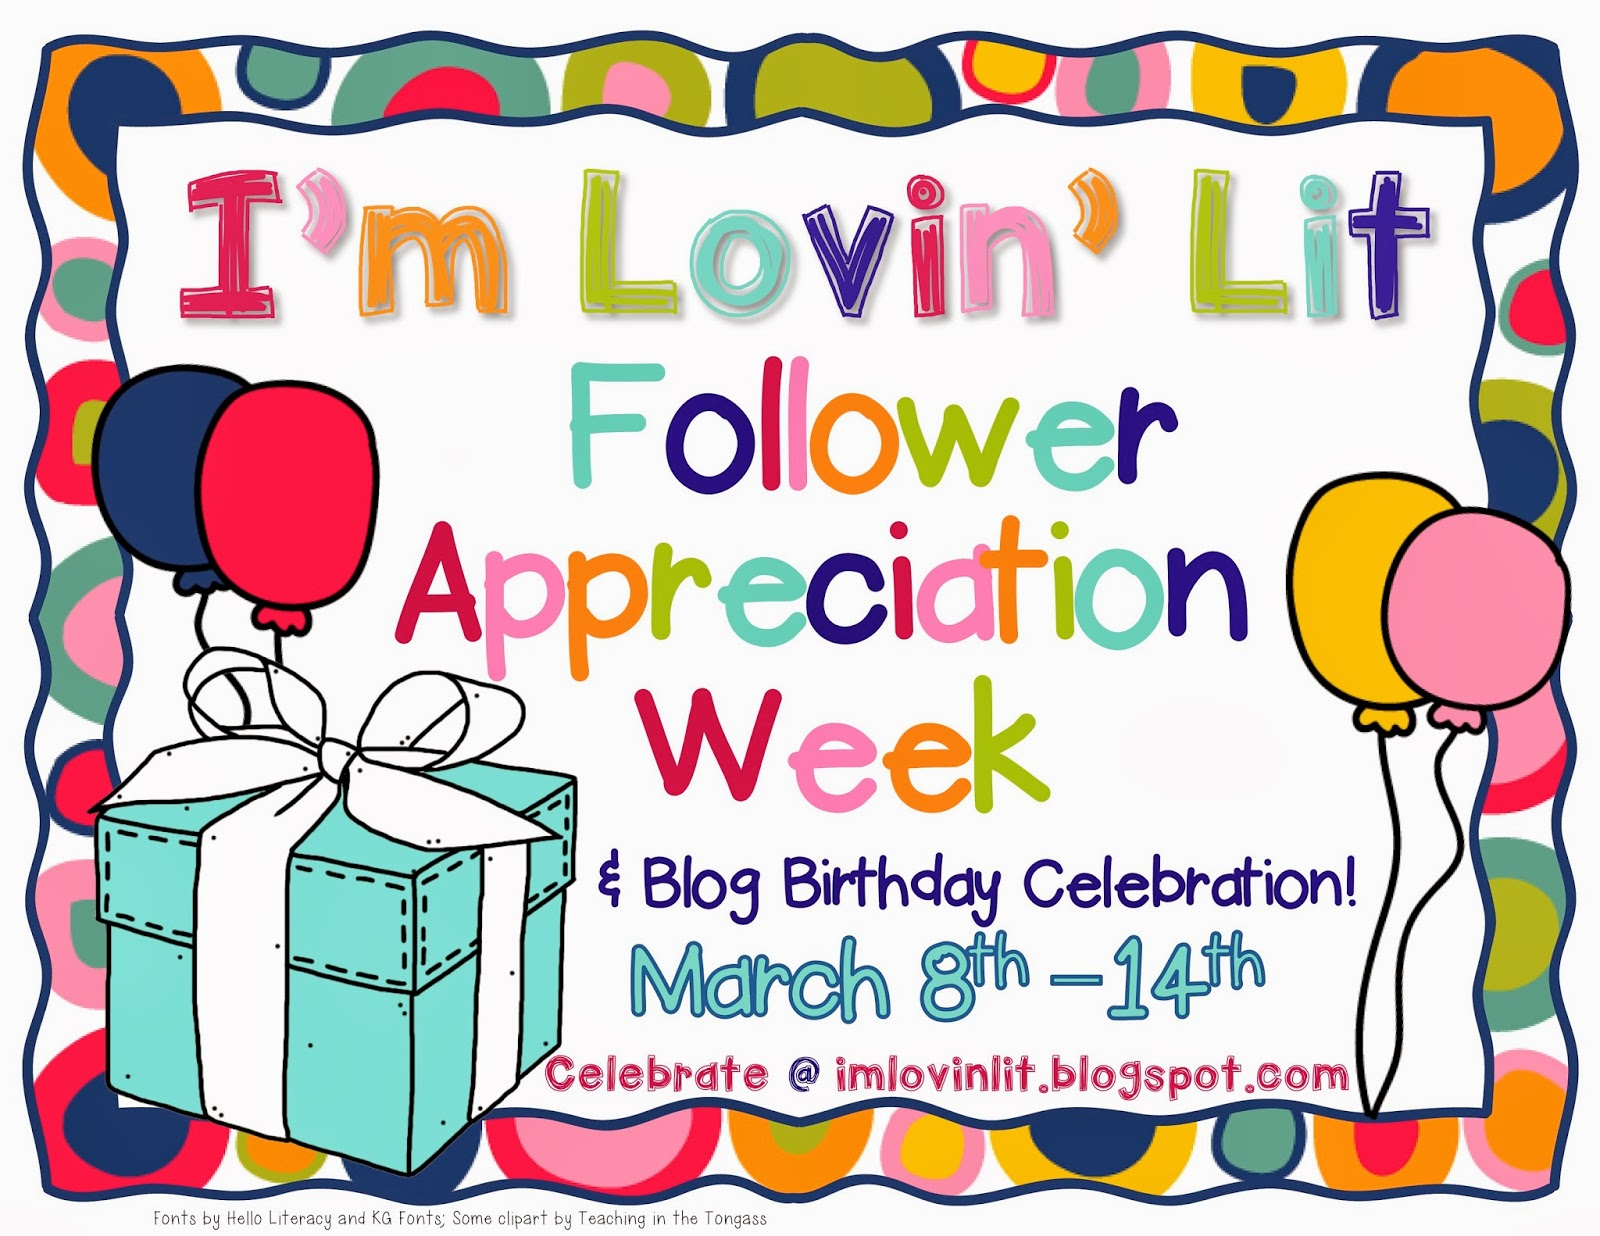 Day 4: Follower Appreciation Week